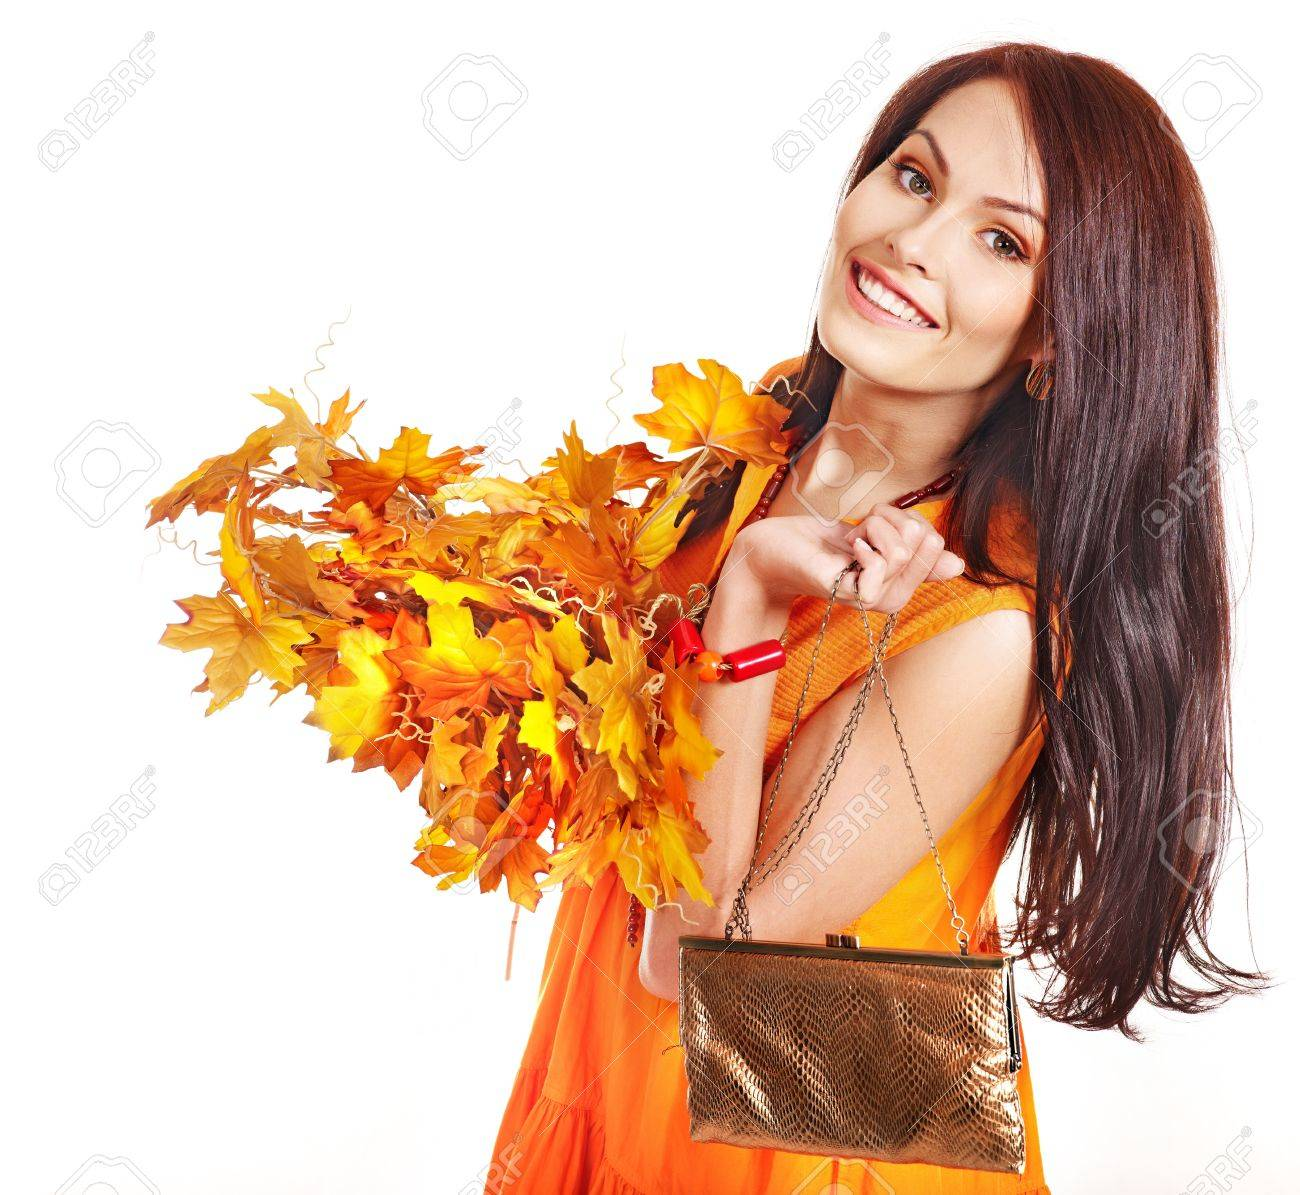 Woman holding  orange leaf and handbag. Autumn fashion. Stock Photo - 15635189